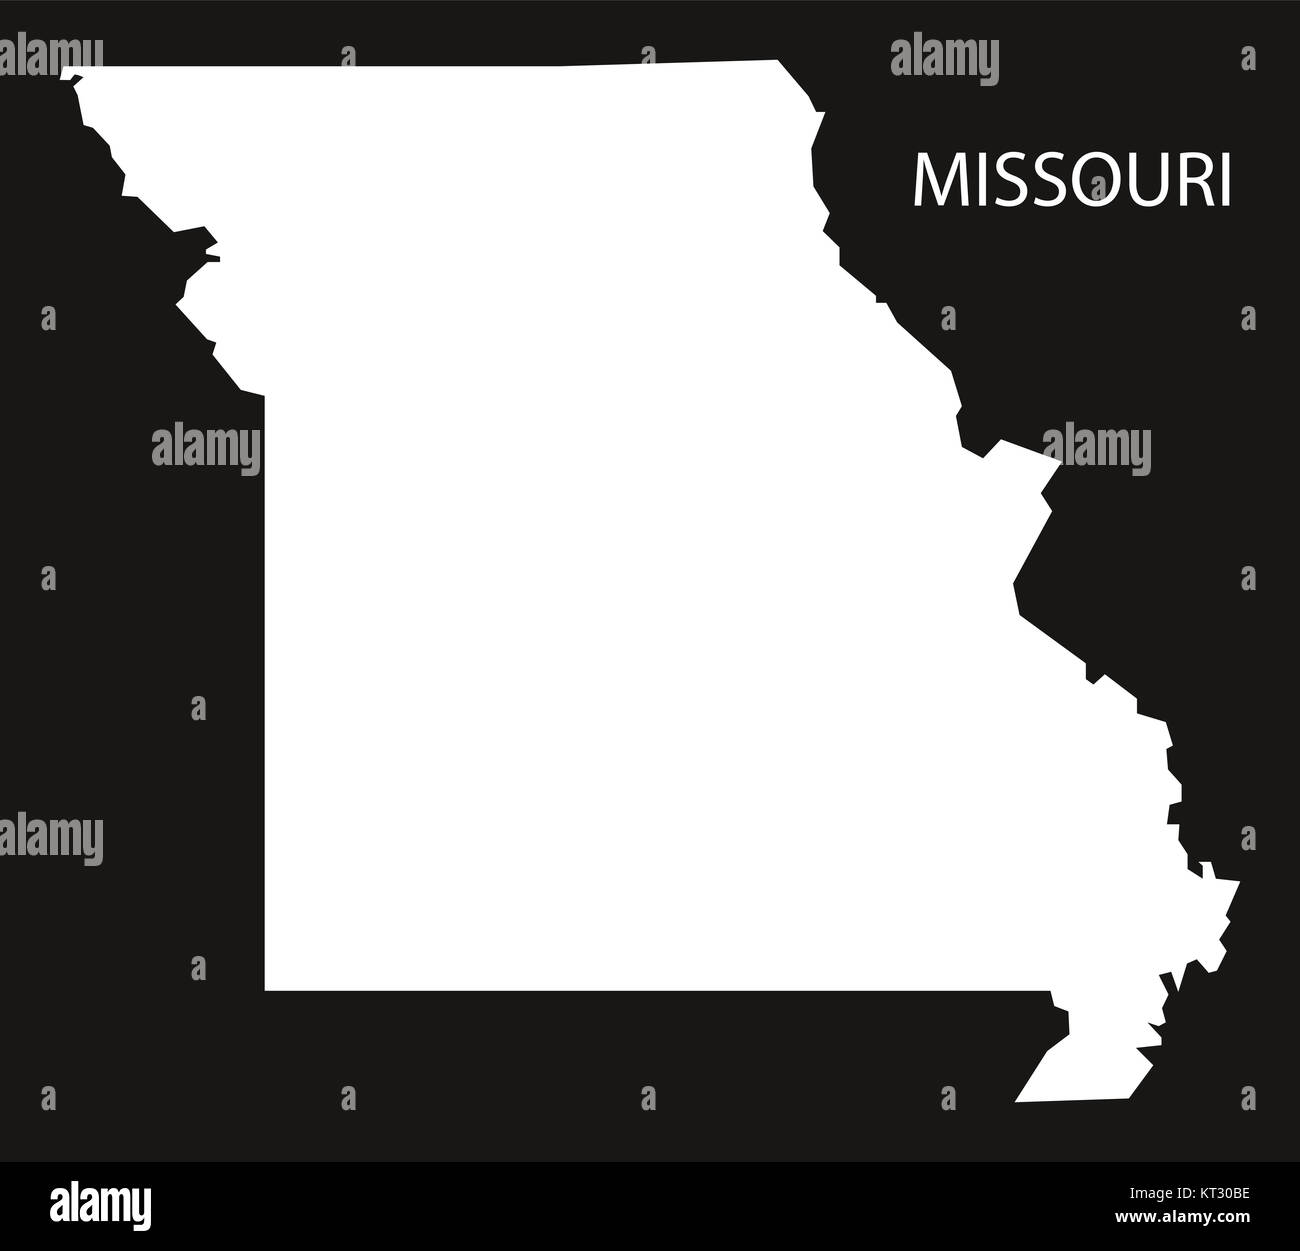 missouri usa map black inverted silhouette map